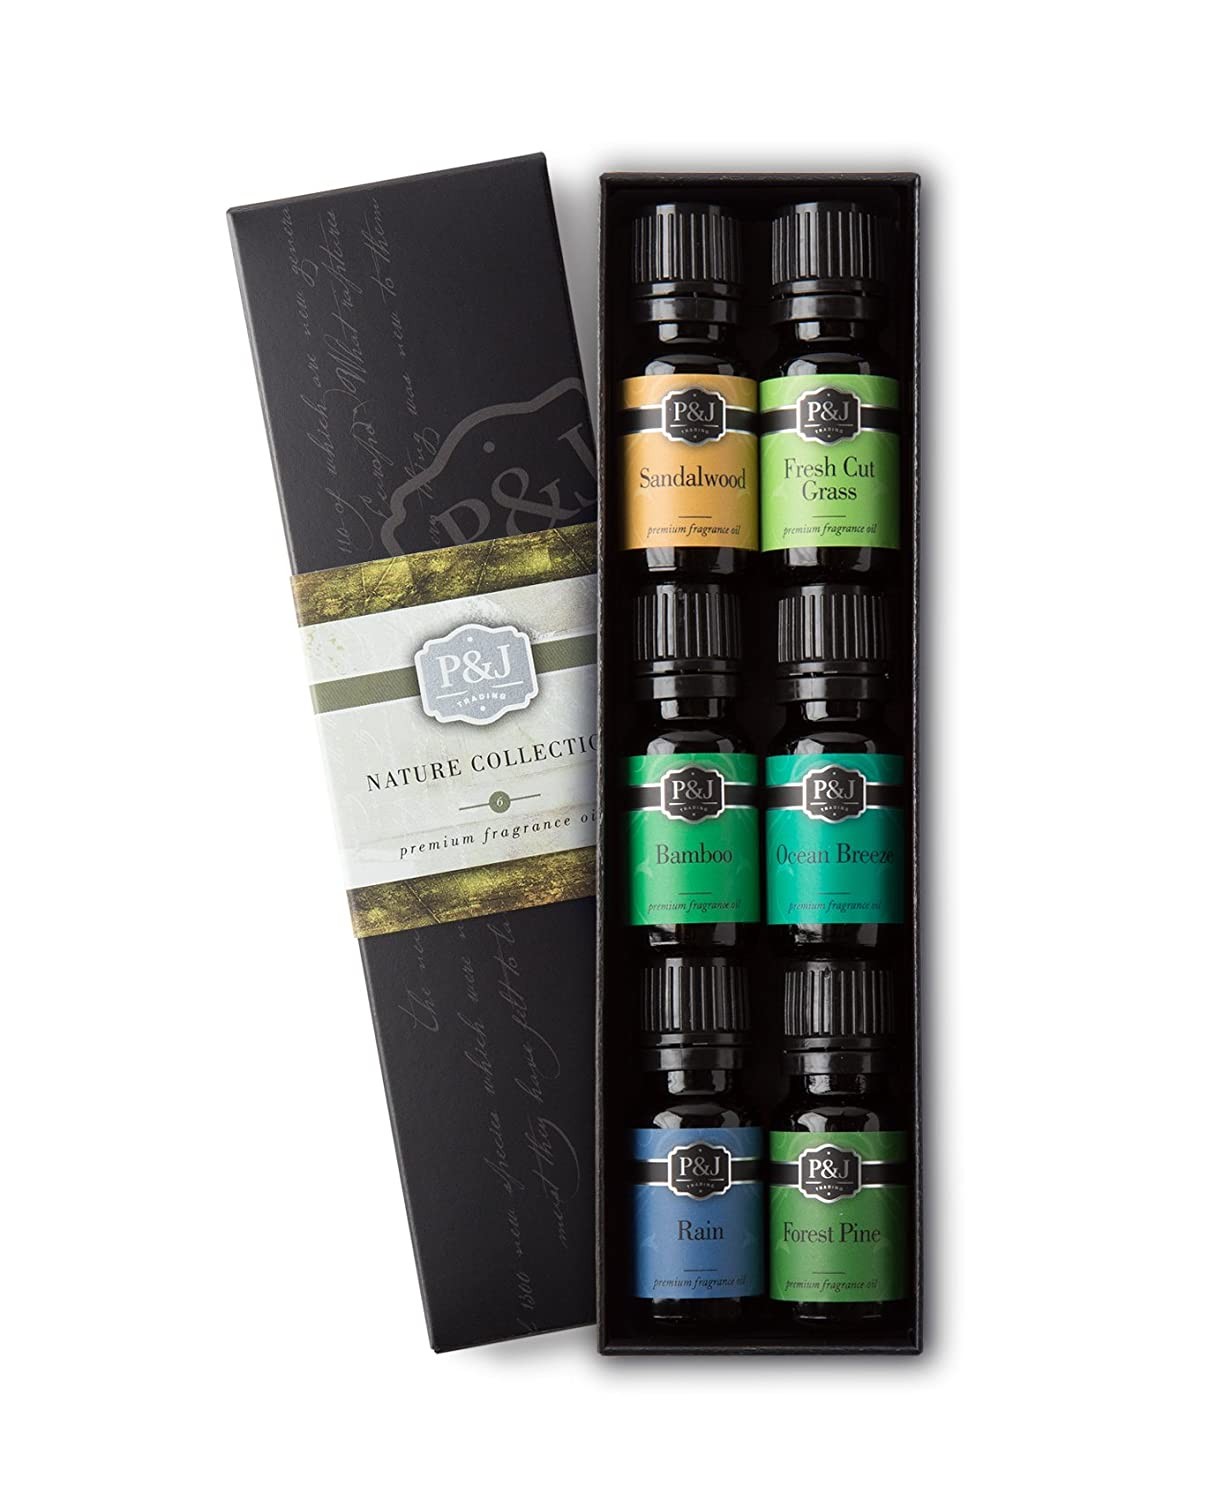 P& J Trading Nature Set of 6 Premium Grade Fragrance Oils - Forest Pine, Ocean Breeze, Rain, Fresh Cut Grass, Sandalwood, Bamboo - 10ml FBA_FR10AUS